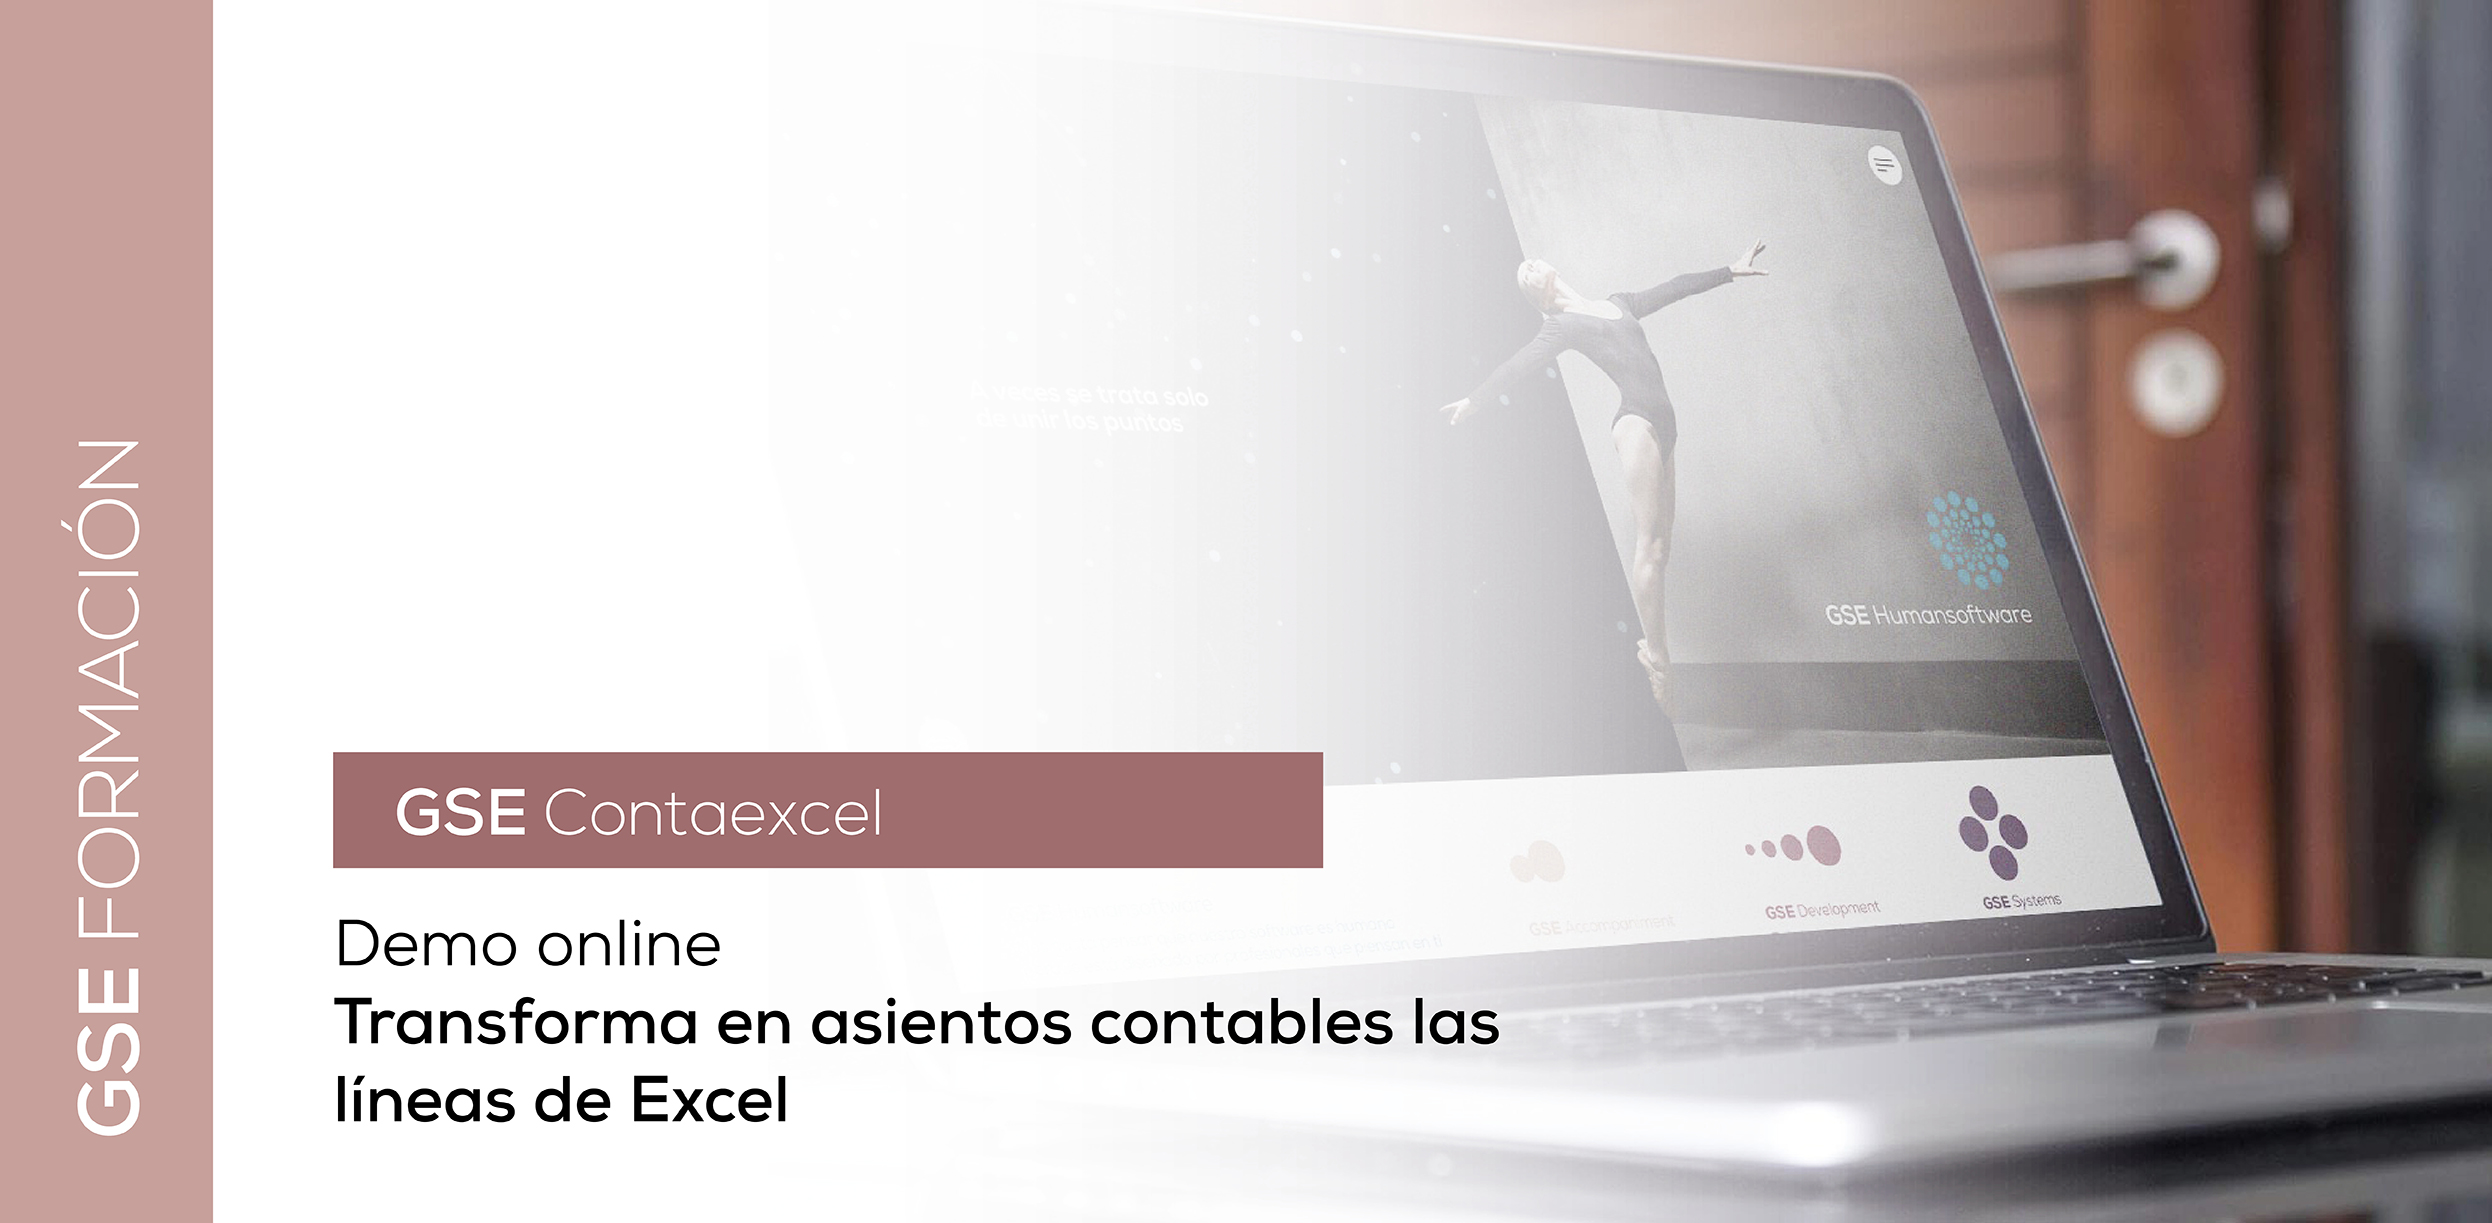 Demo: GSE Contaexcel